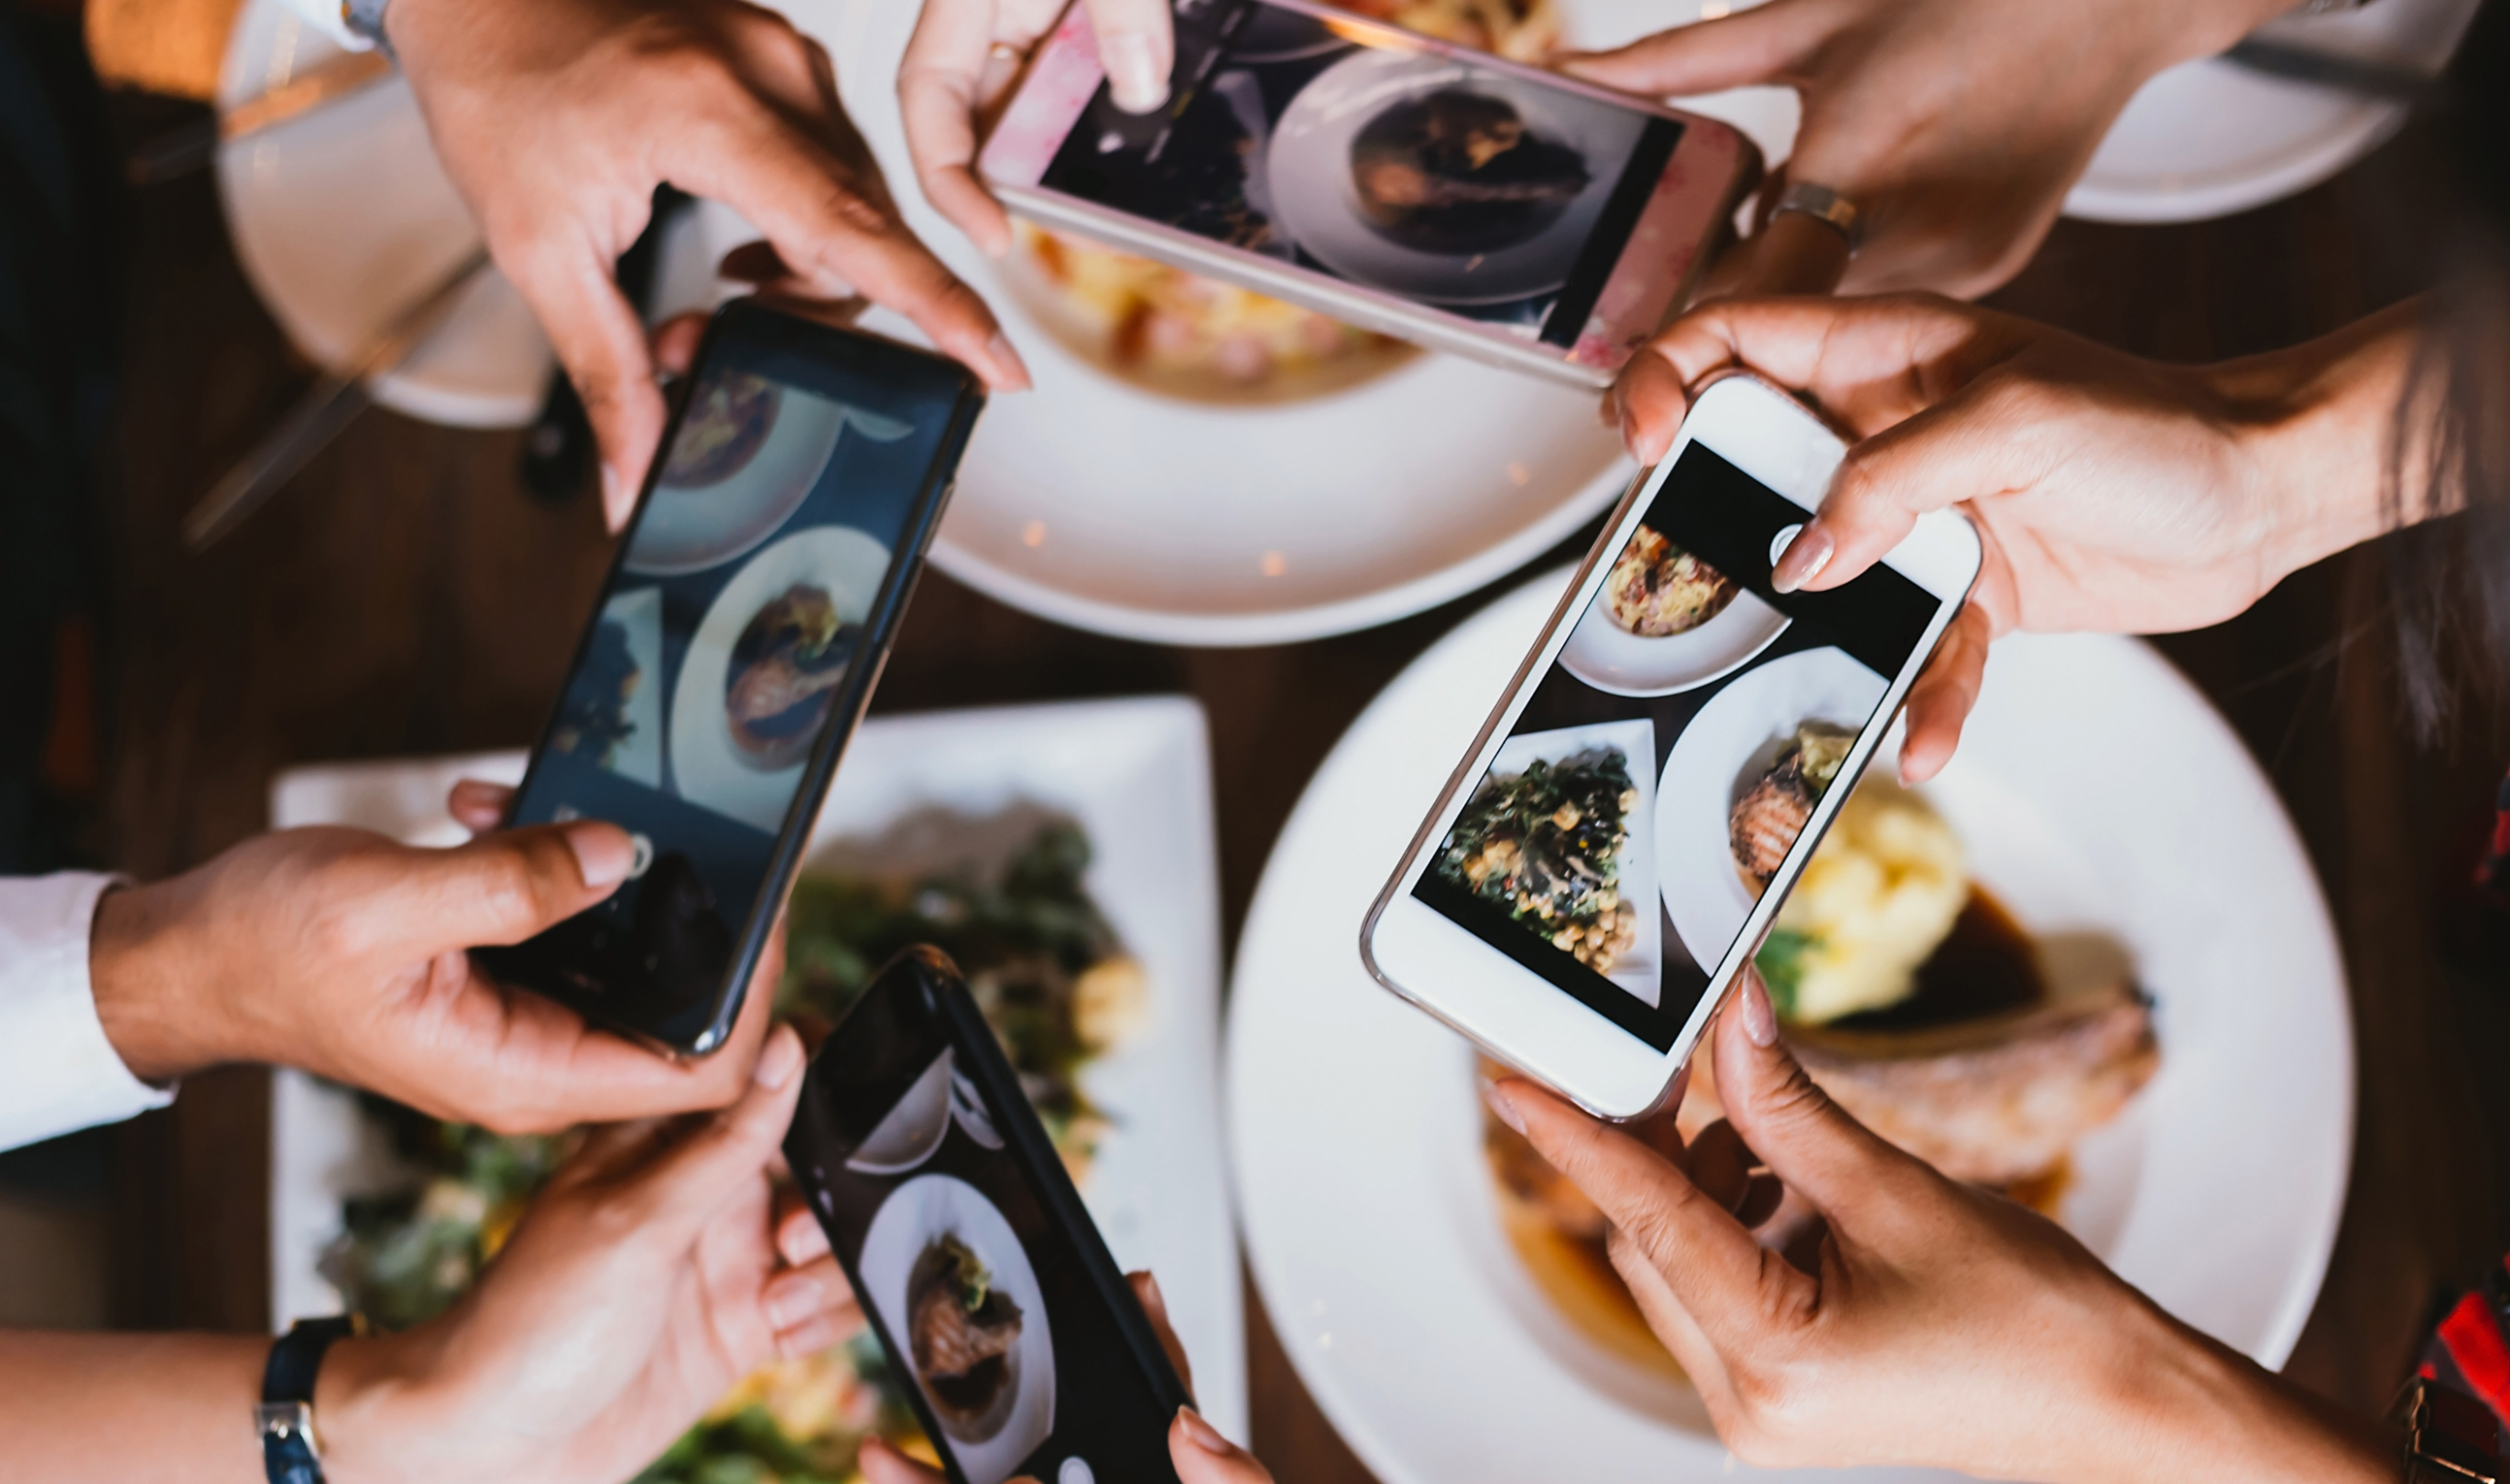 Many hands holding smartphones to take pictures of plates of food